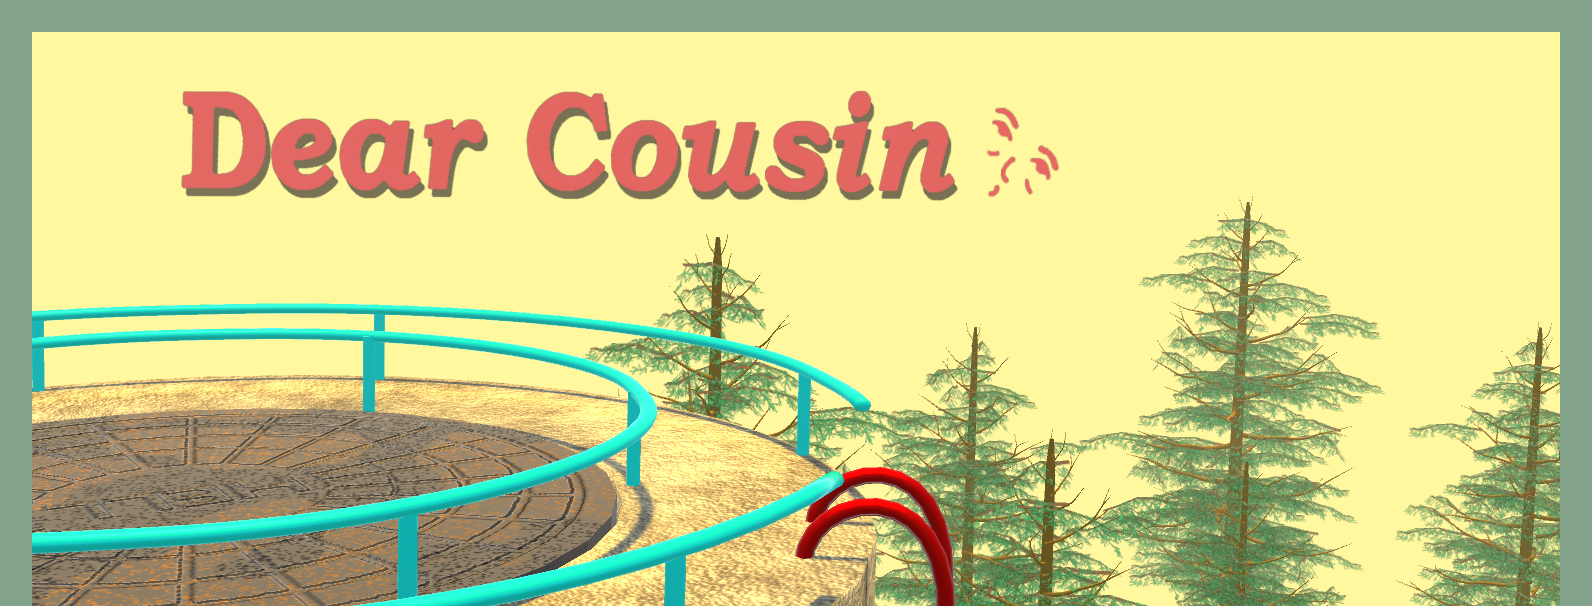 Dear Cousin